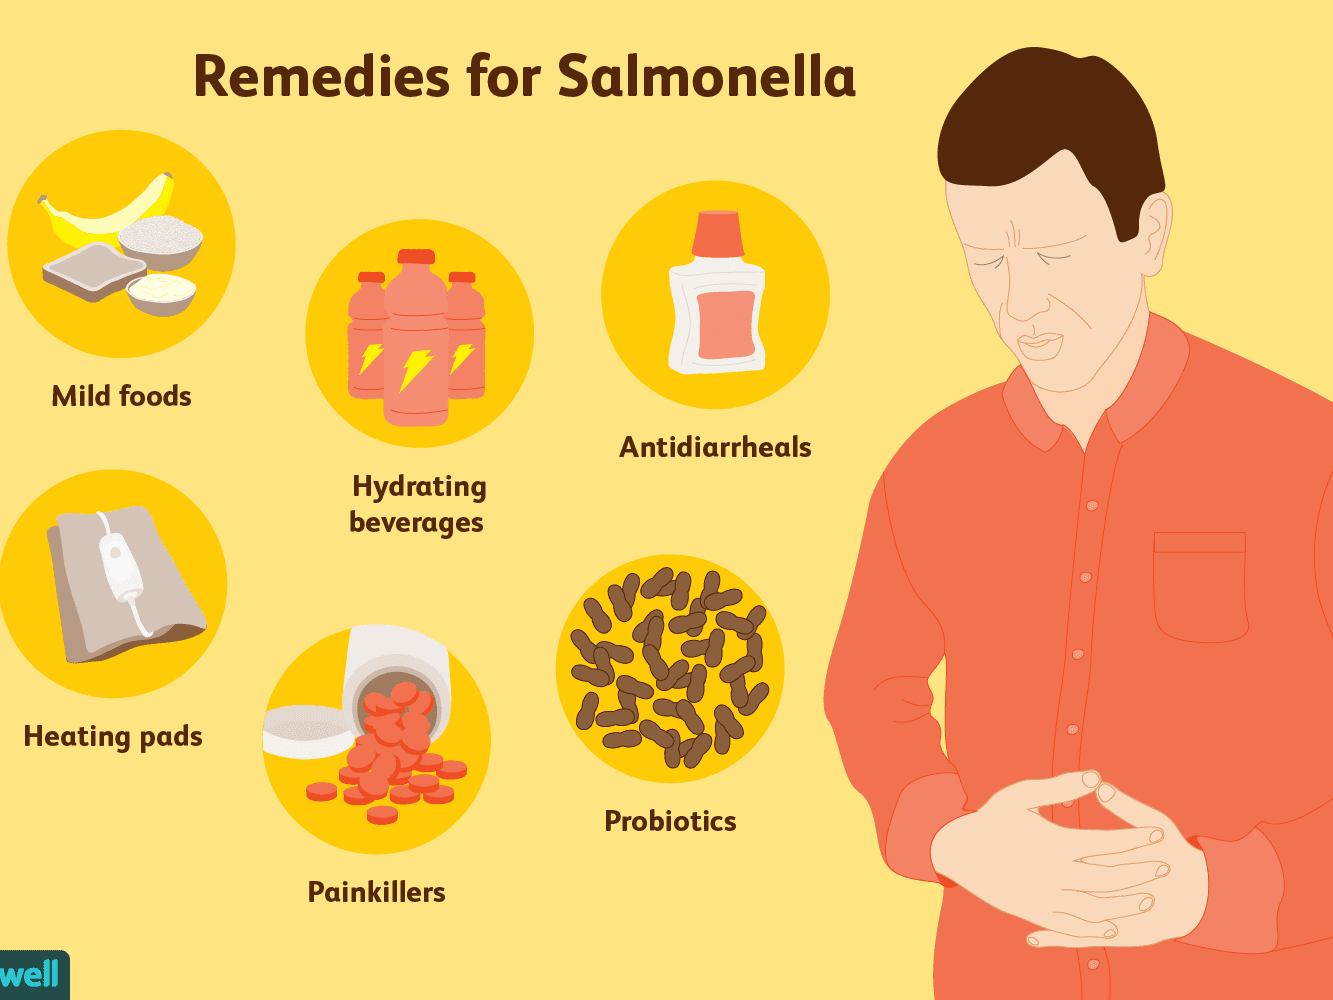 How Salmonella Is Treated